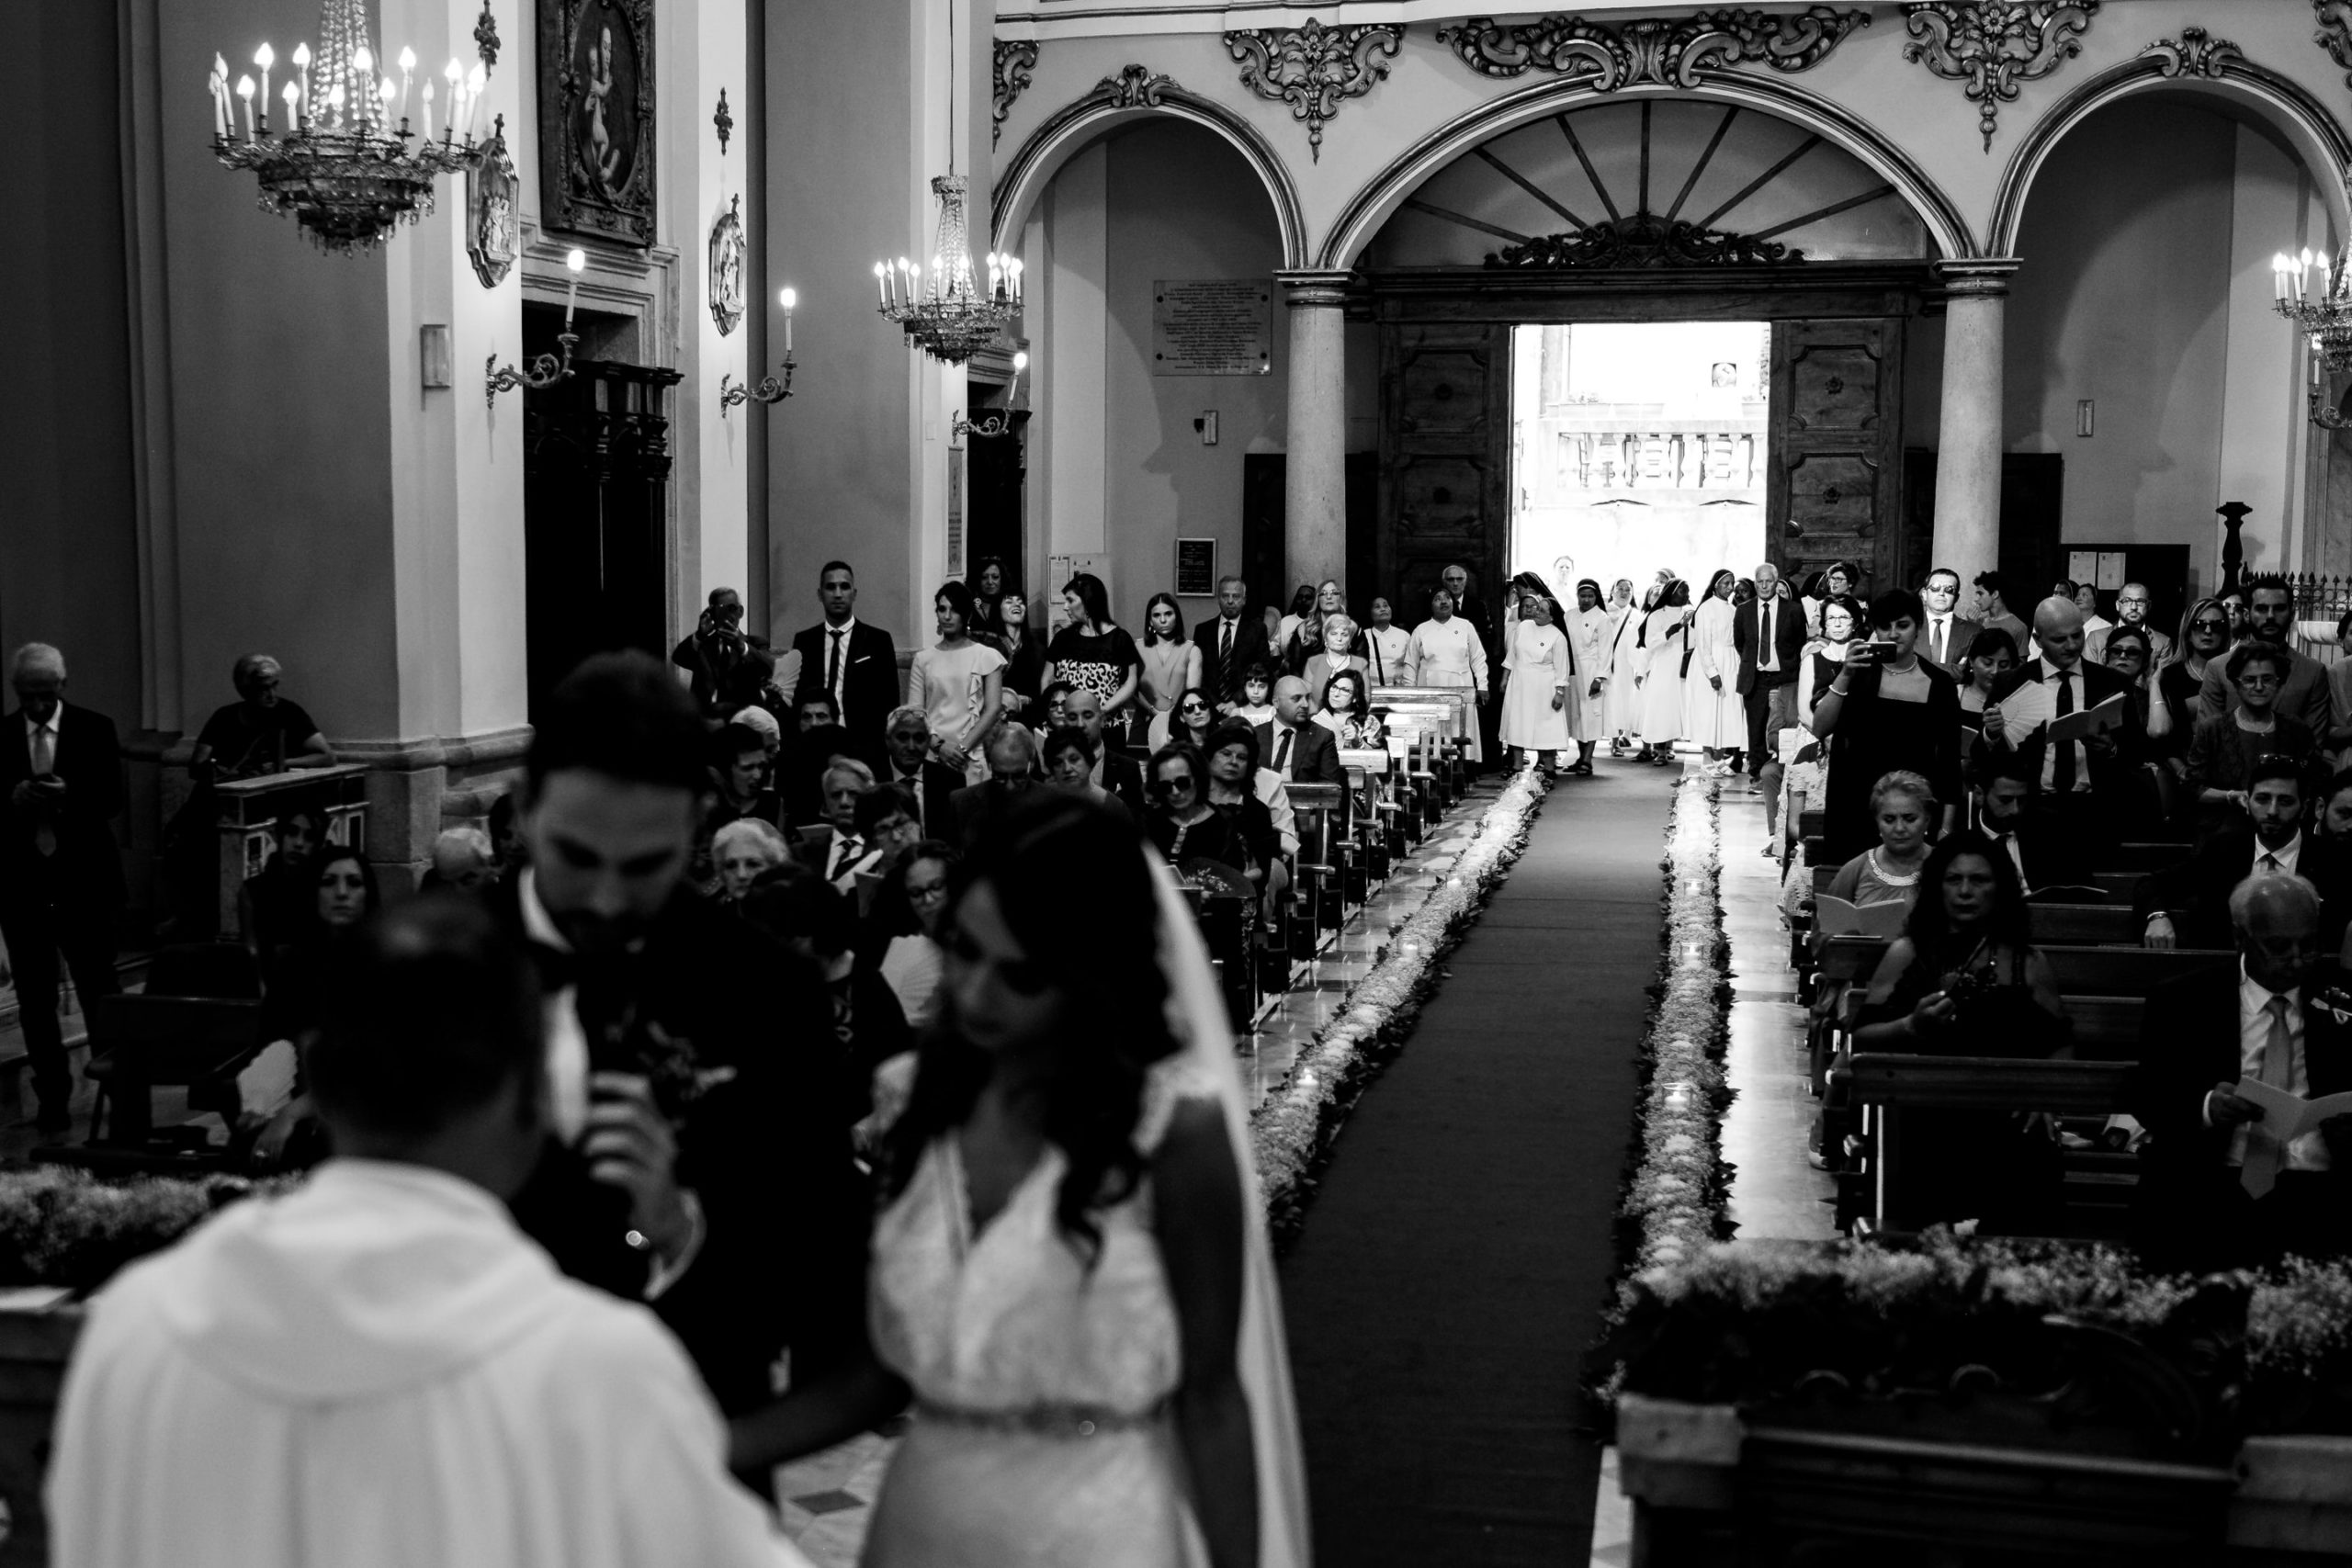 wedding in diamante calabria italy Wedding Ceremony in Italian Church